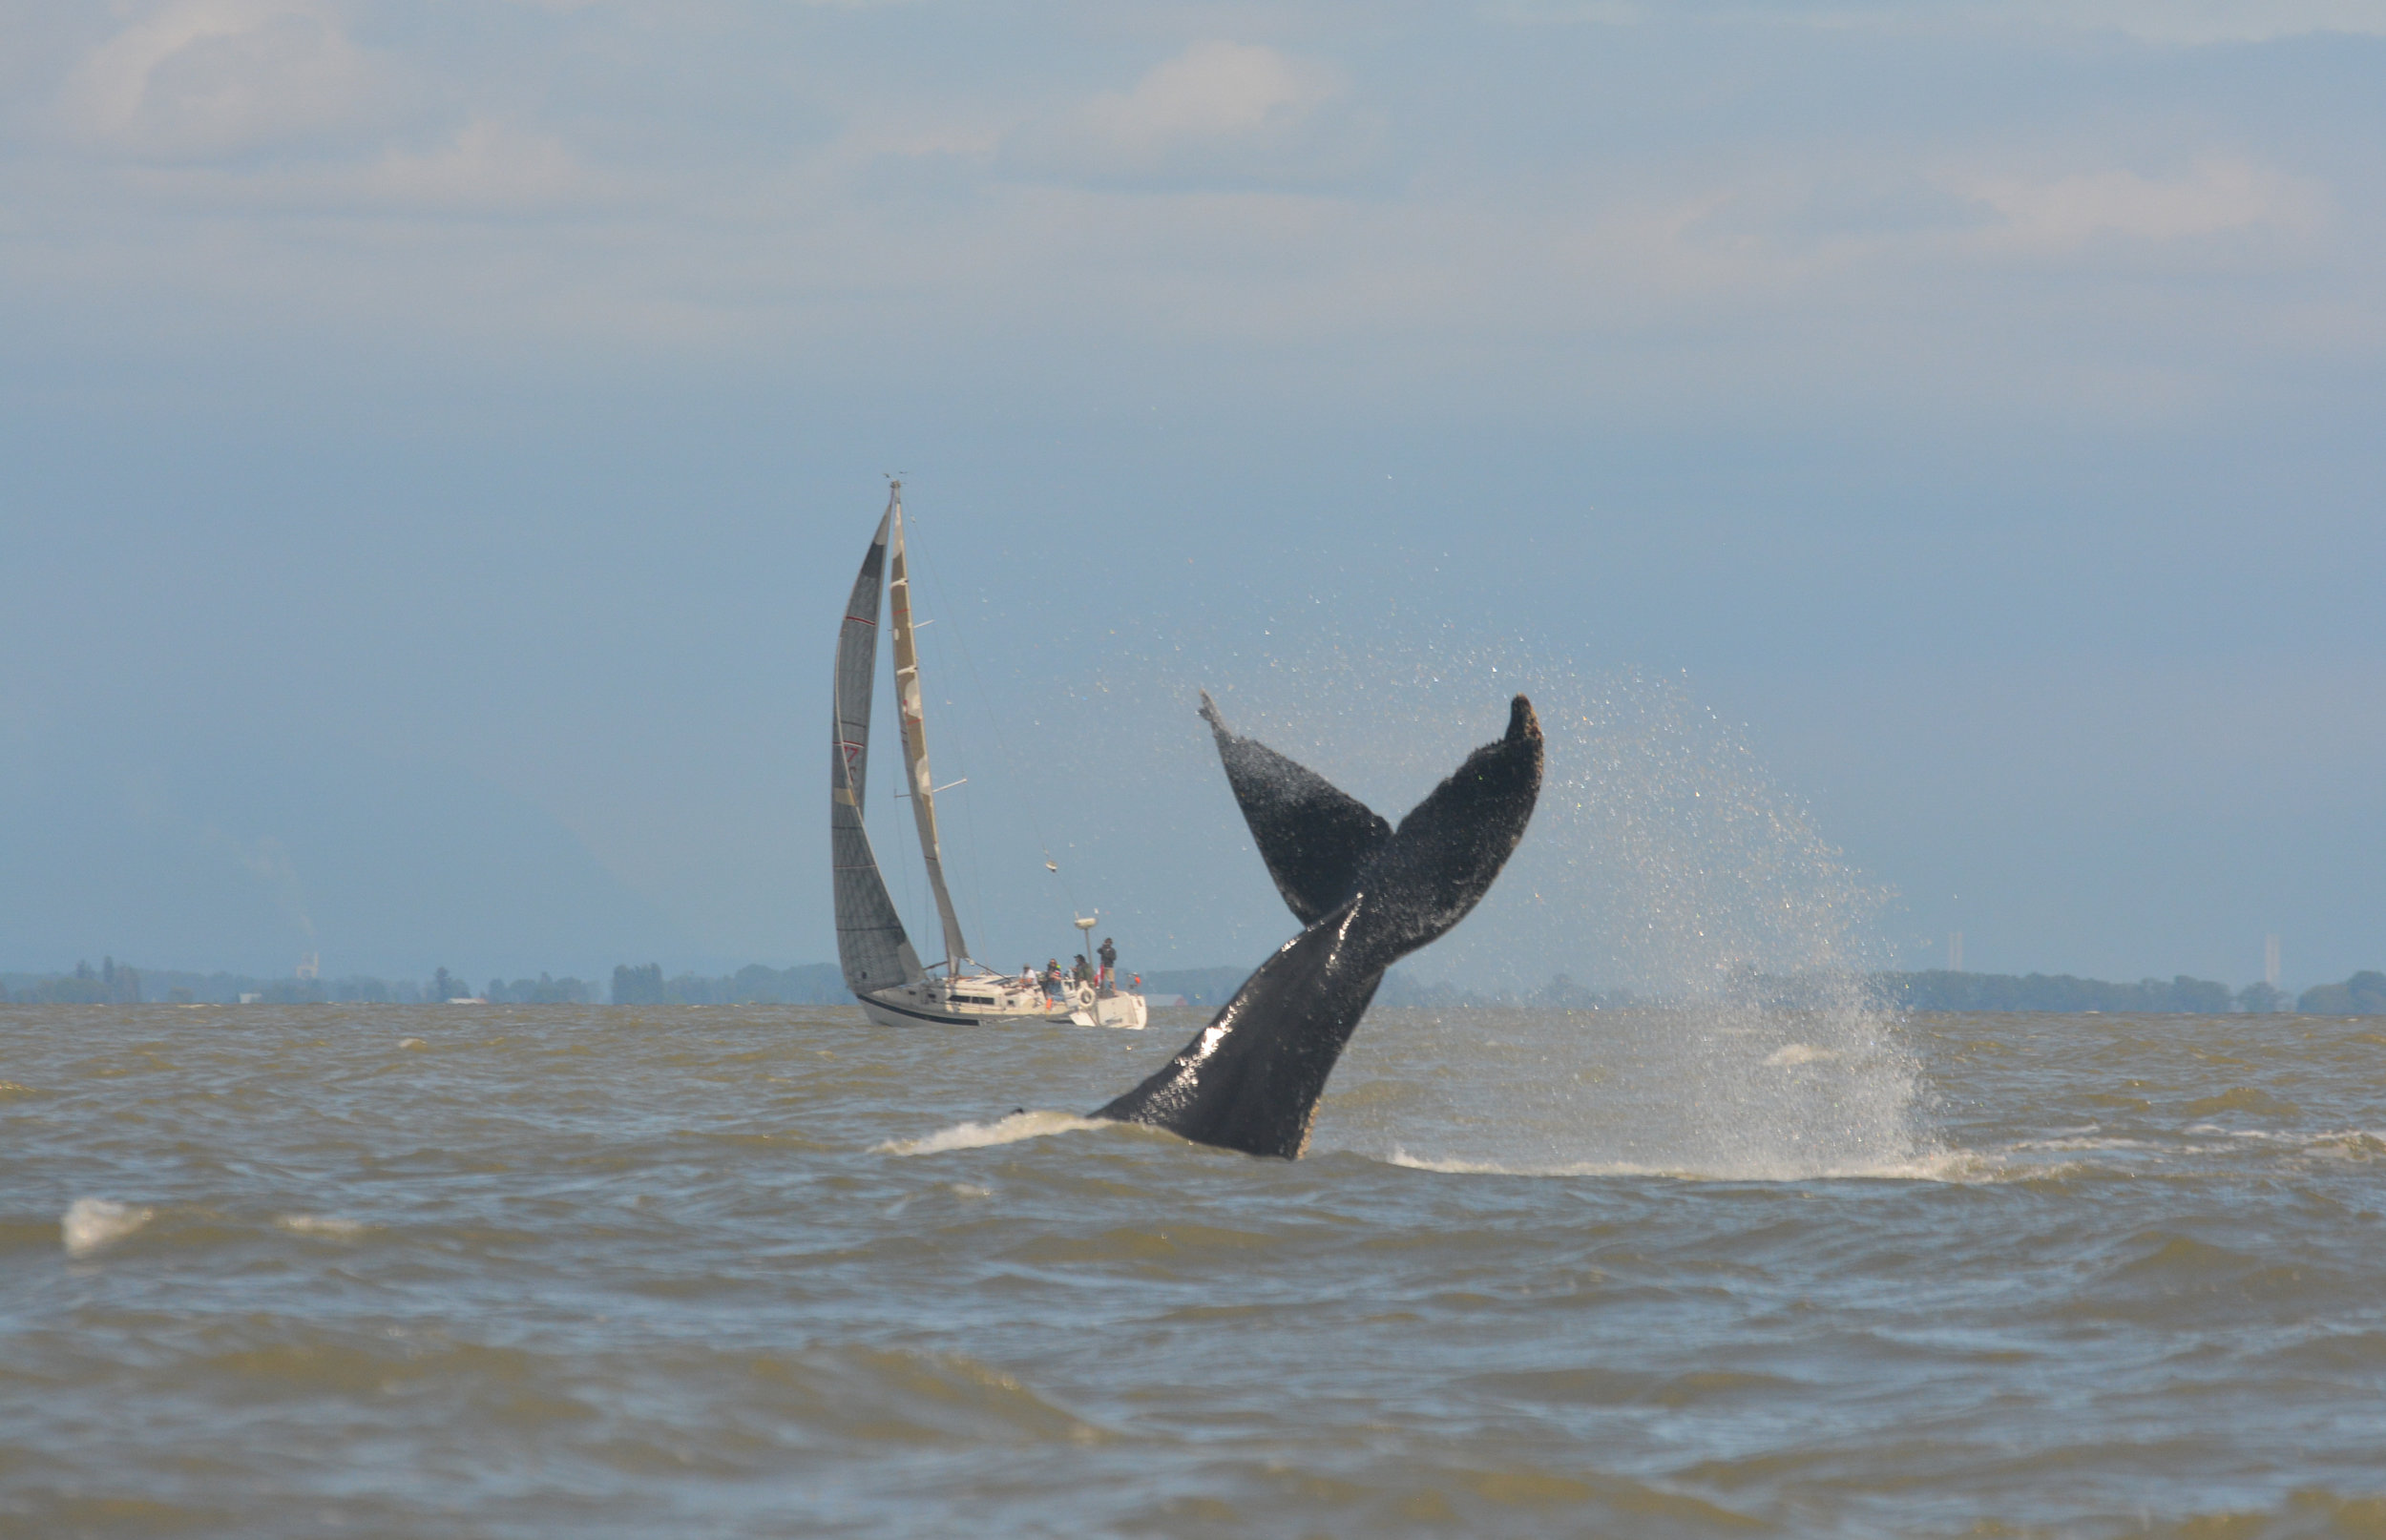 This lucky sailor is not only enjoying a windy day in the Strait! Photo by Kaitlyn Watson.